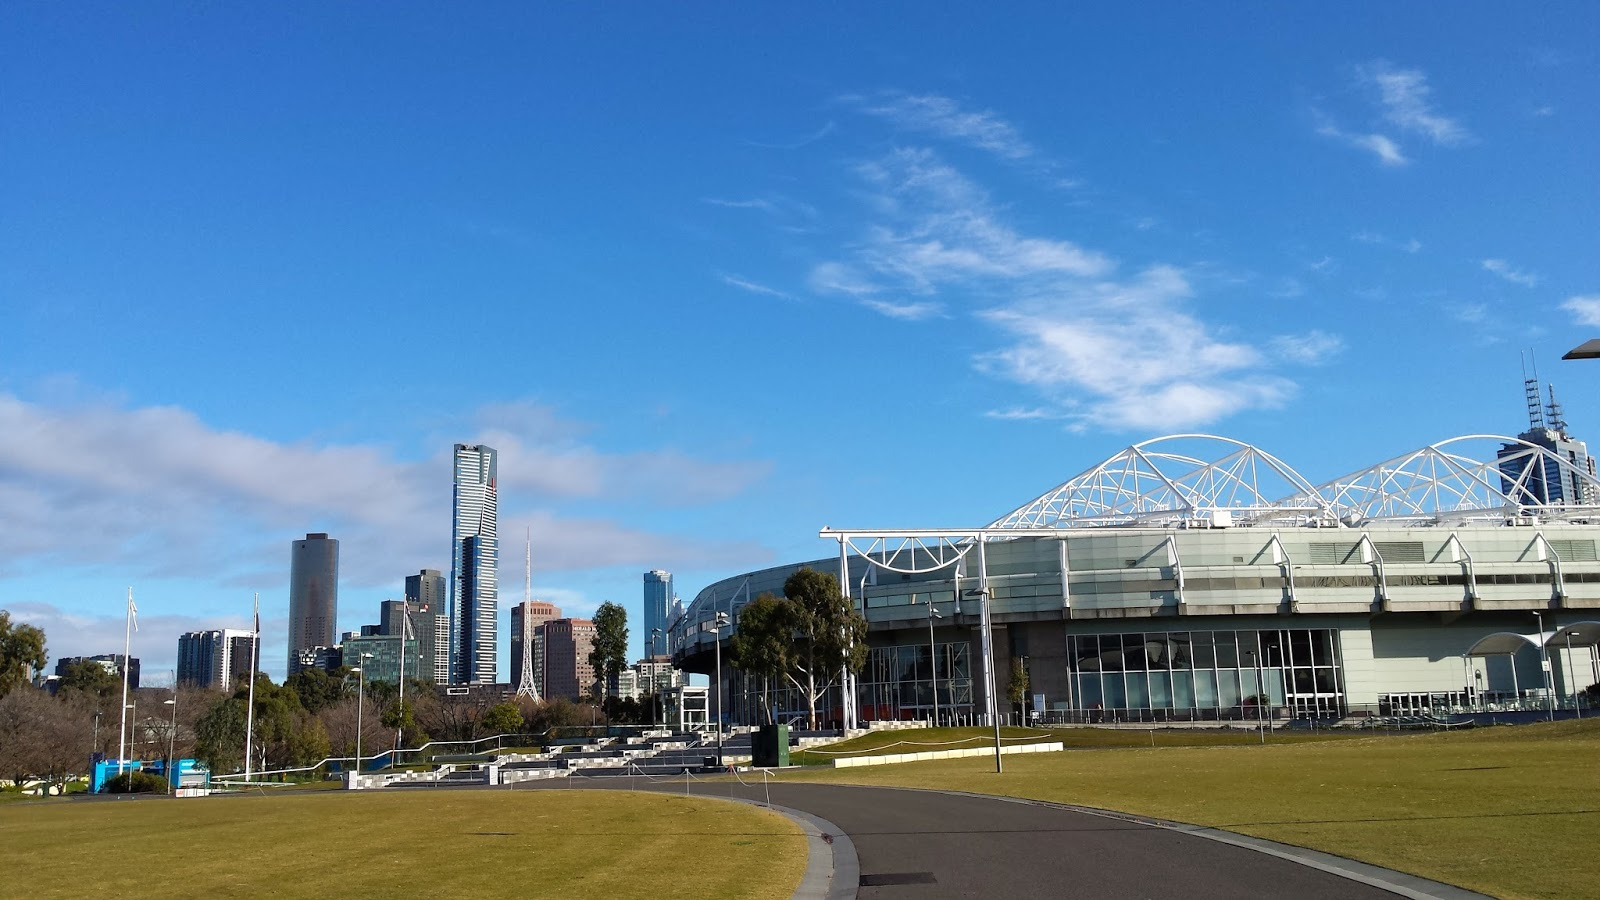 Rdo melbourne australian open guided tours rod laver arena for Door 9 rod laver arena